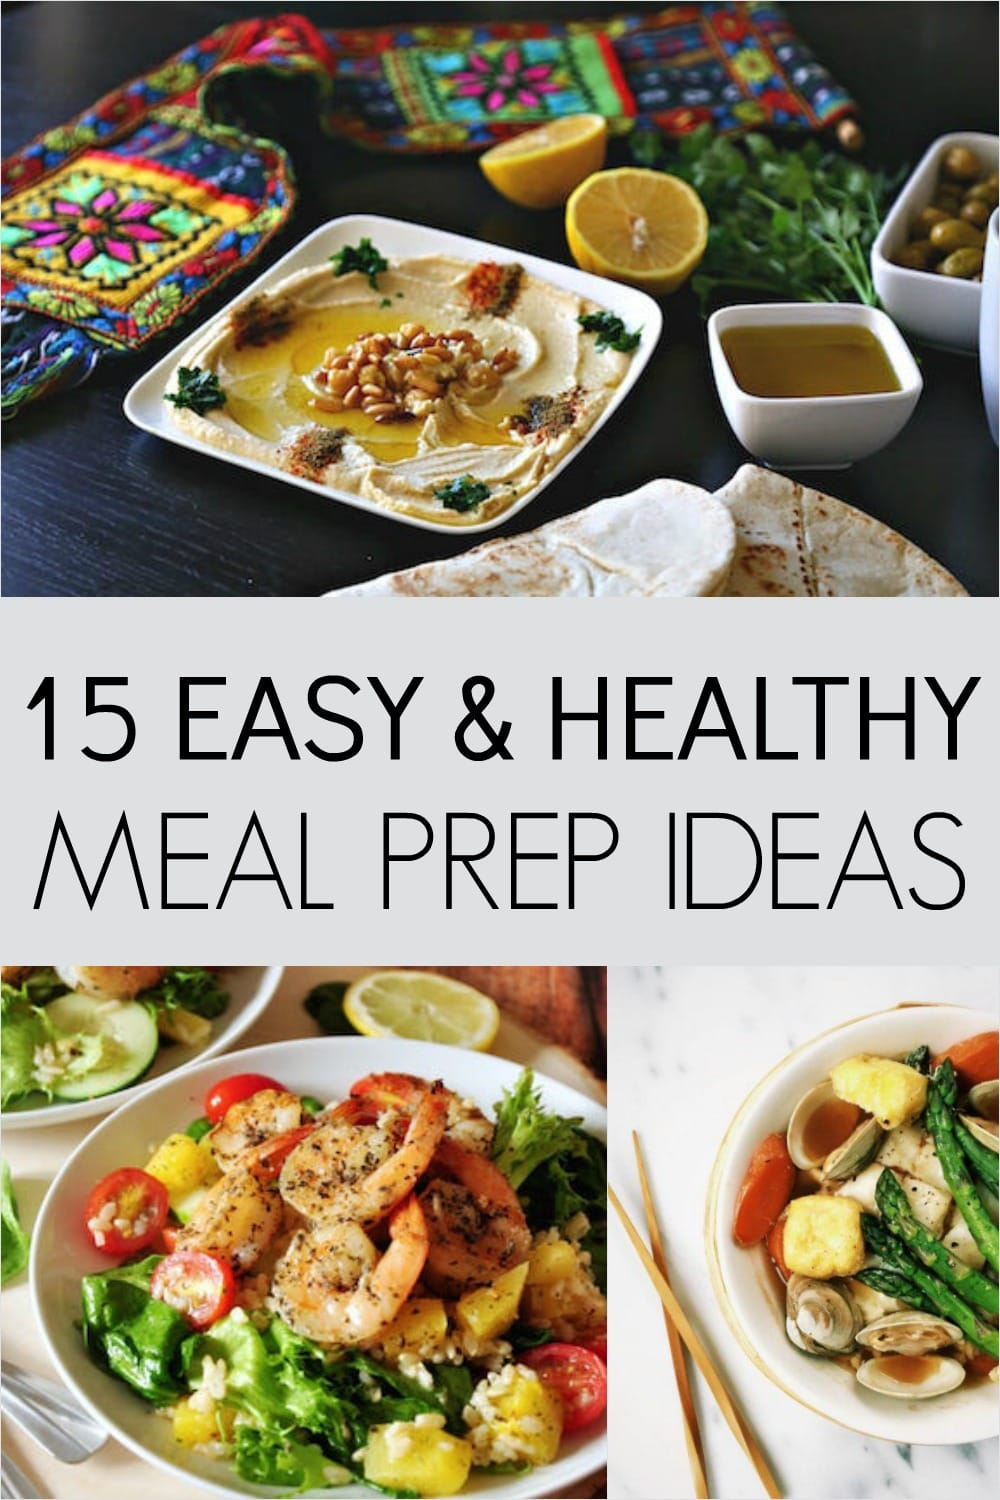 Meal prep for weight loss 15 healthy and easy ideas super foods life im just starting out with meal prepping and so far it has been amazing forumfinder Choice Image